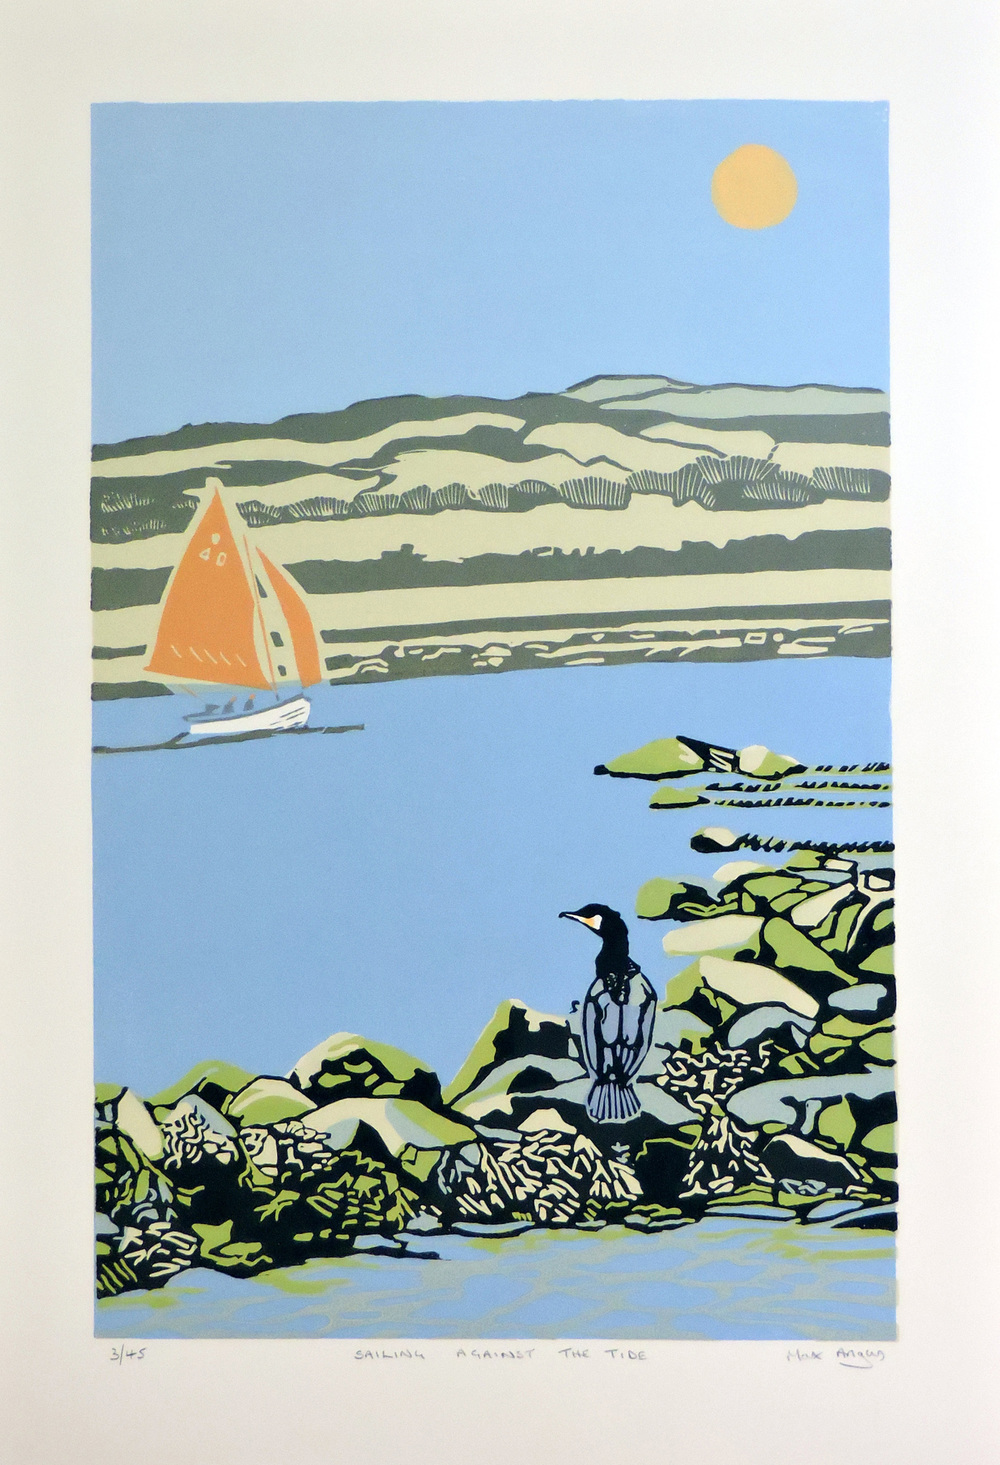 Max Angus Sailing Against the Tide linocut £235